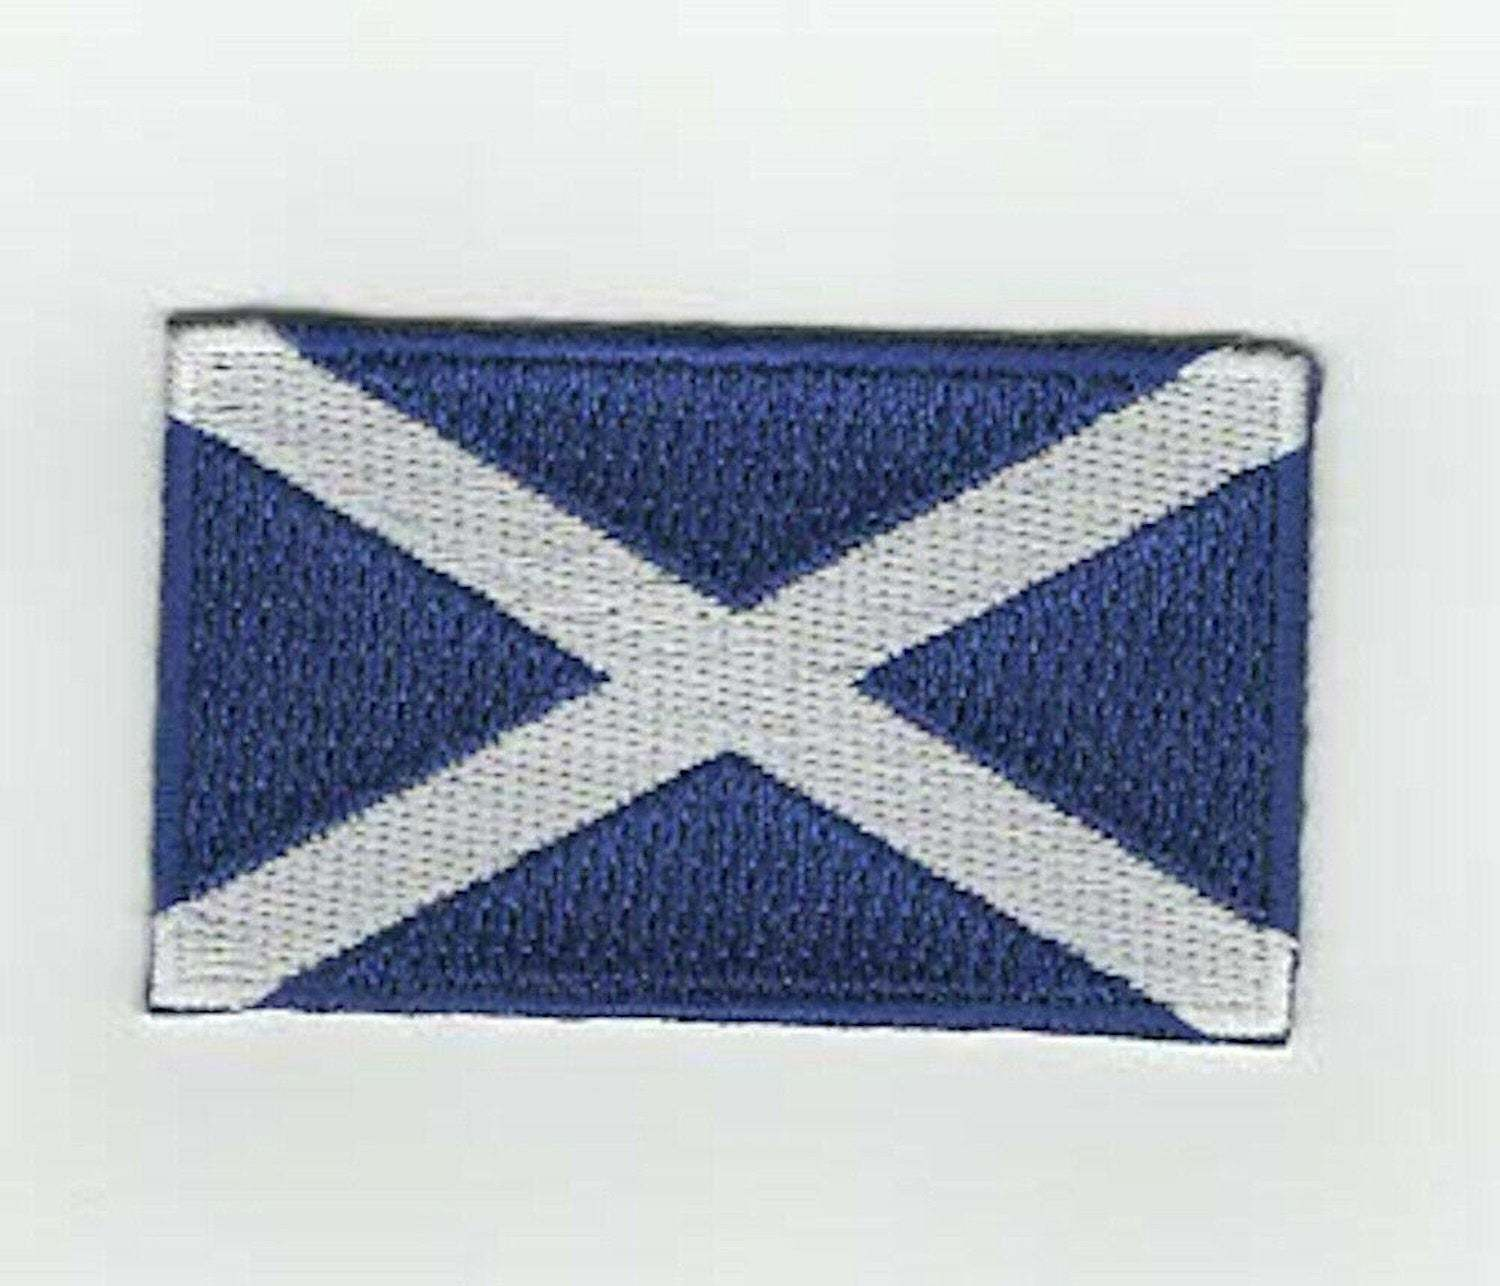 scottish, scotland,saltire embroidered iron / sew on patch